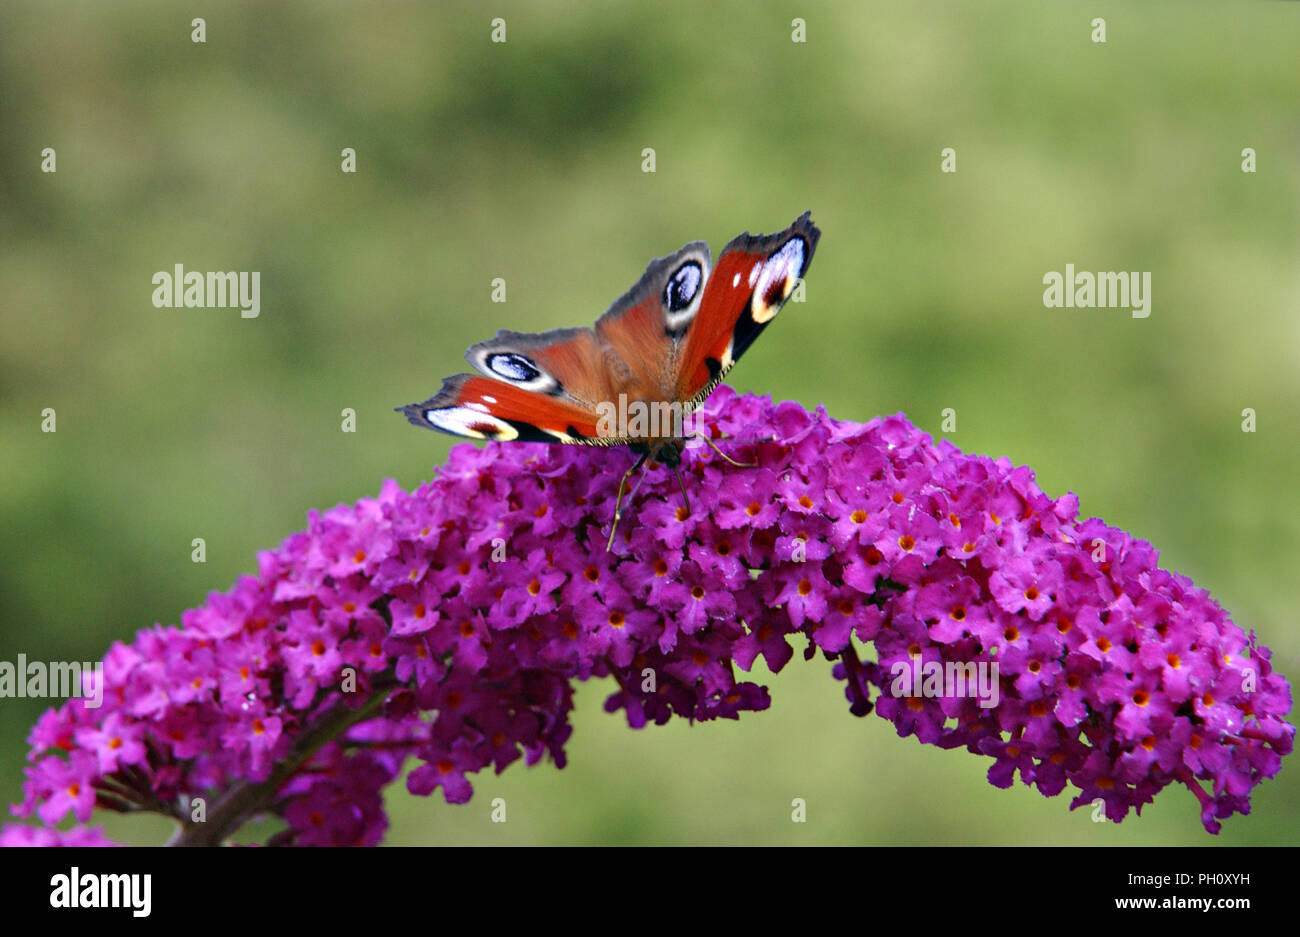 A royal admiral english butterfly rests on a flowering Buddleia bush in an english garden - Stock Image